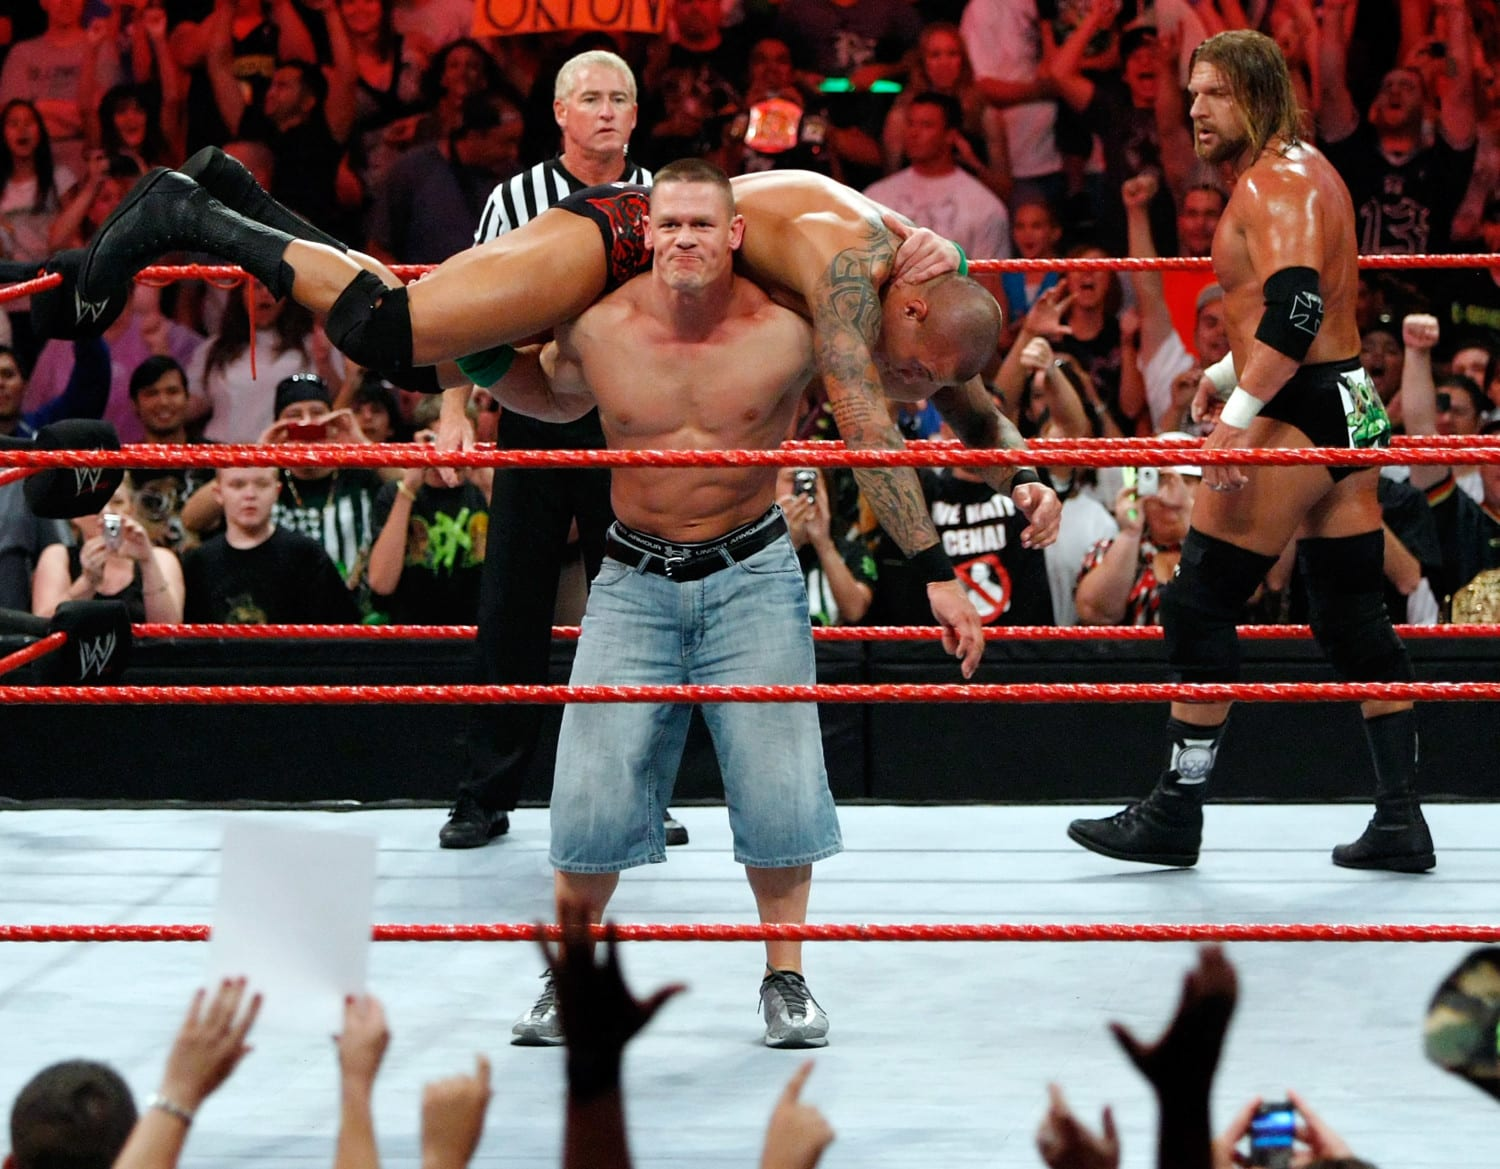 wwe raw photo